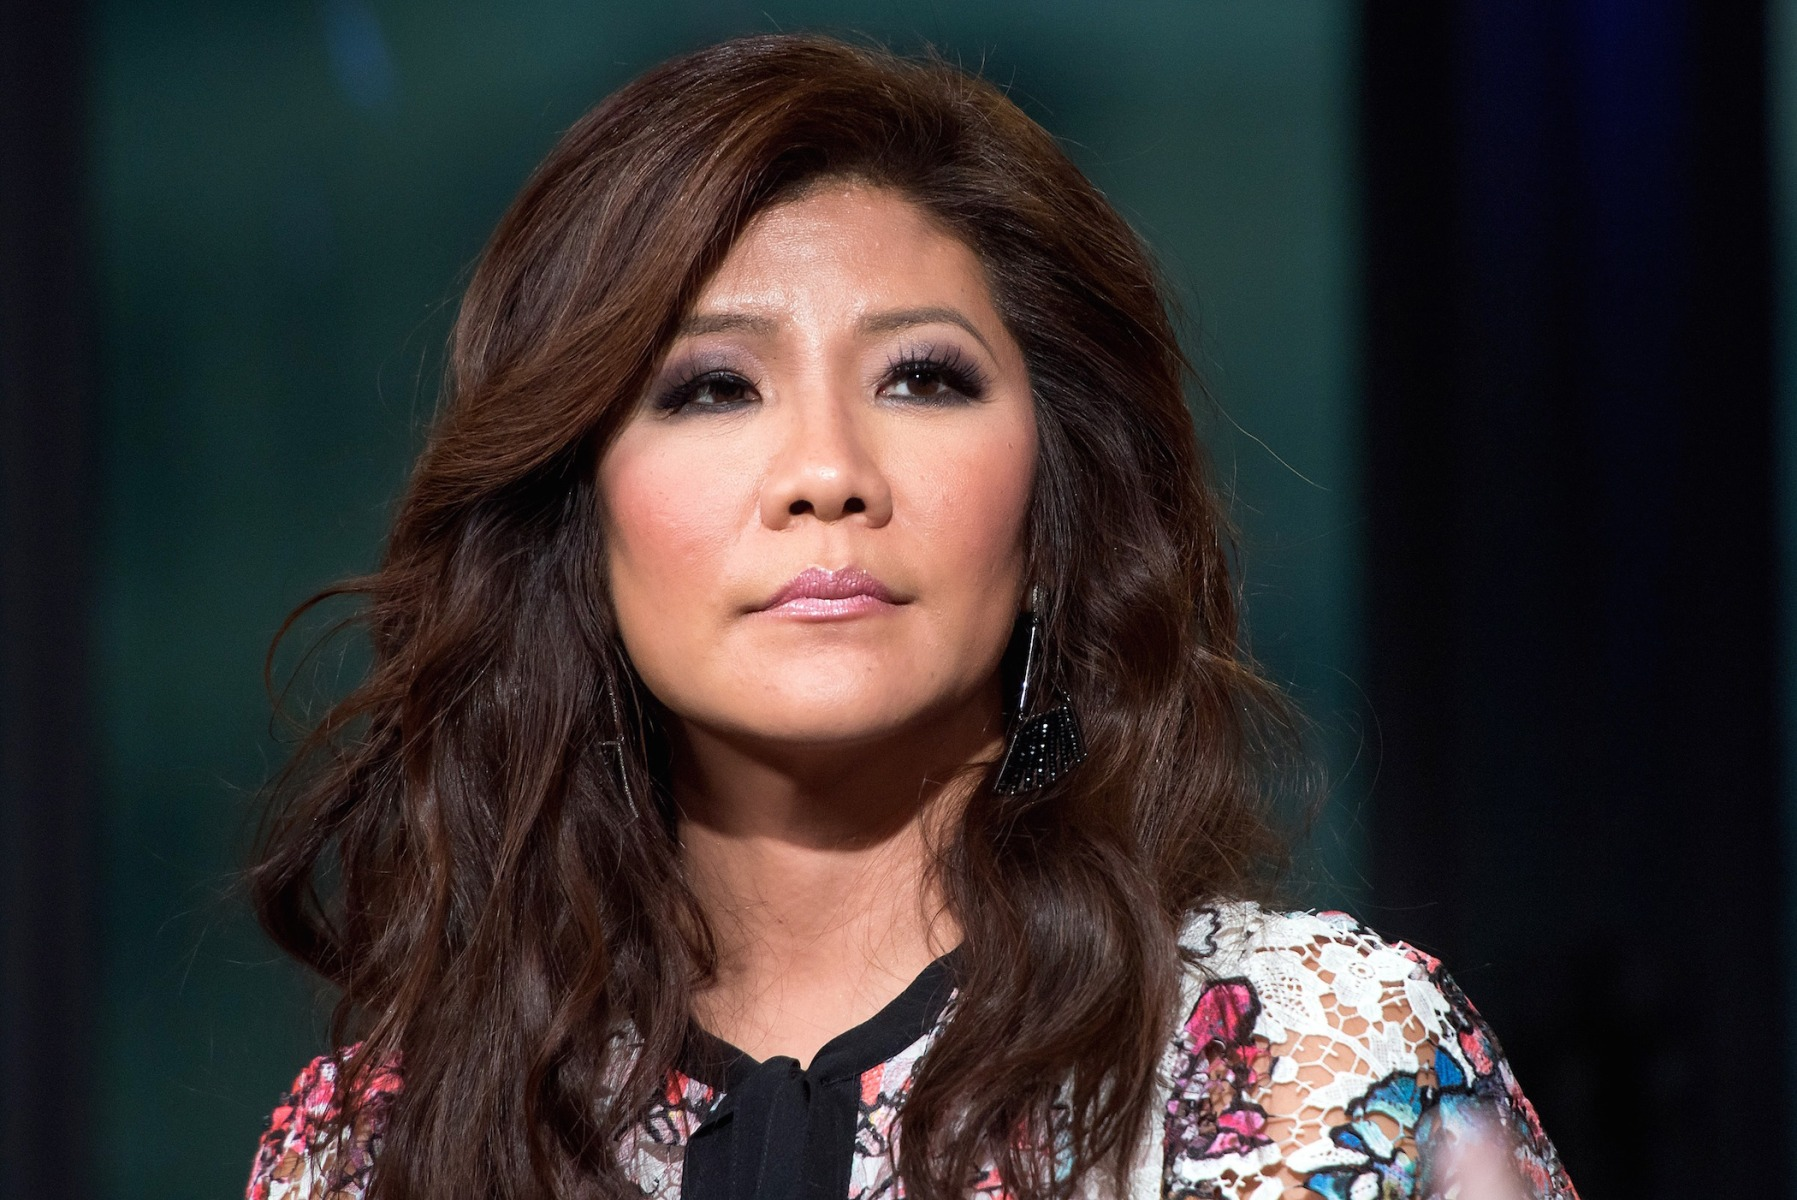 """Julie Chen attends the AOL Build Speaker Series to discuss """"The Talk"""" at AOL HQ on September 6, 2016 in New York City.  (Photo by Mike Pont/WireImage)"""